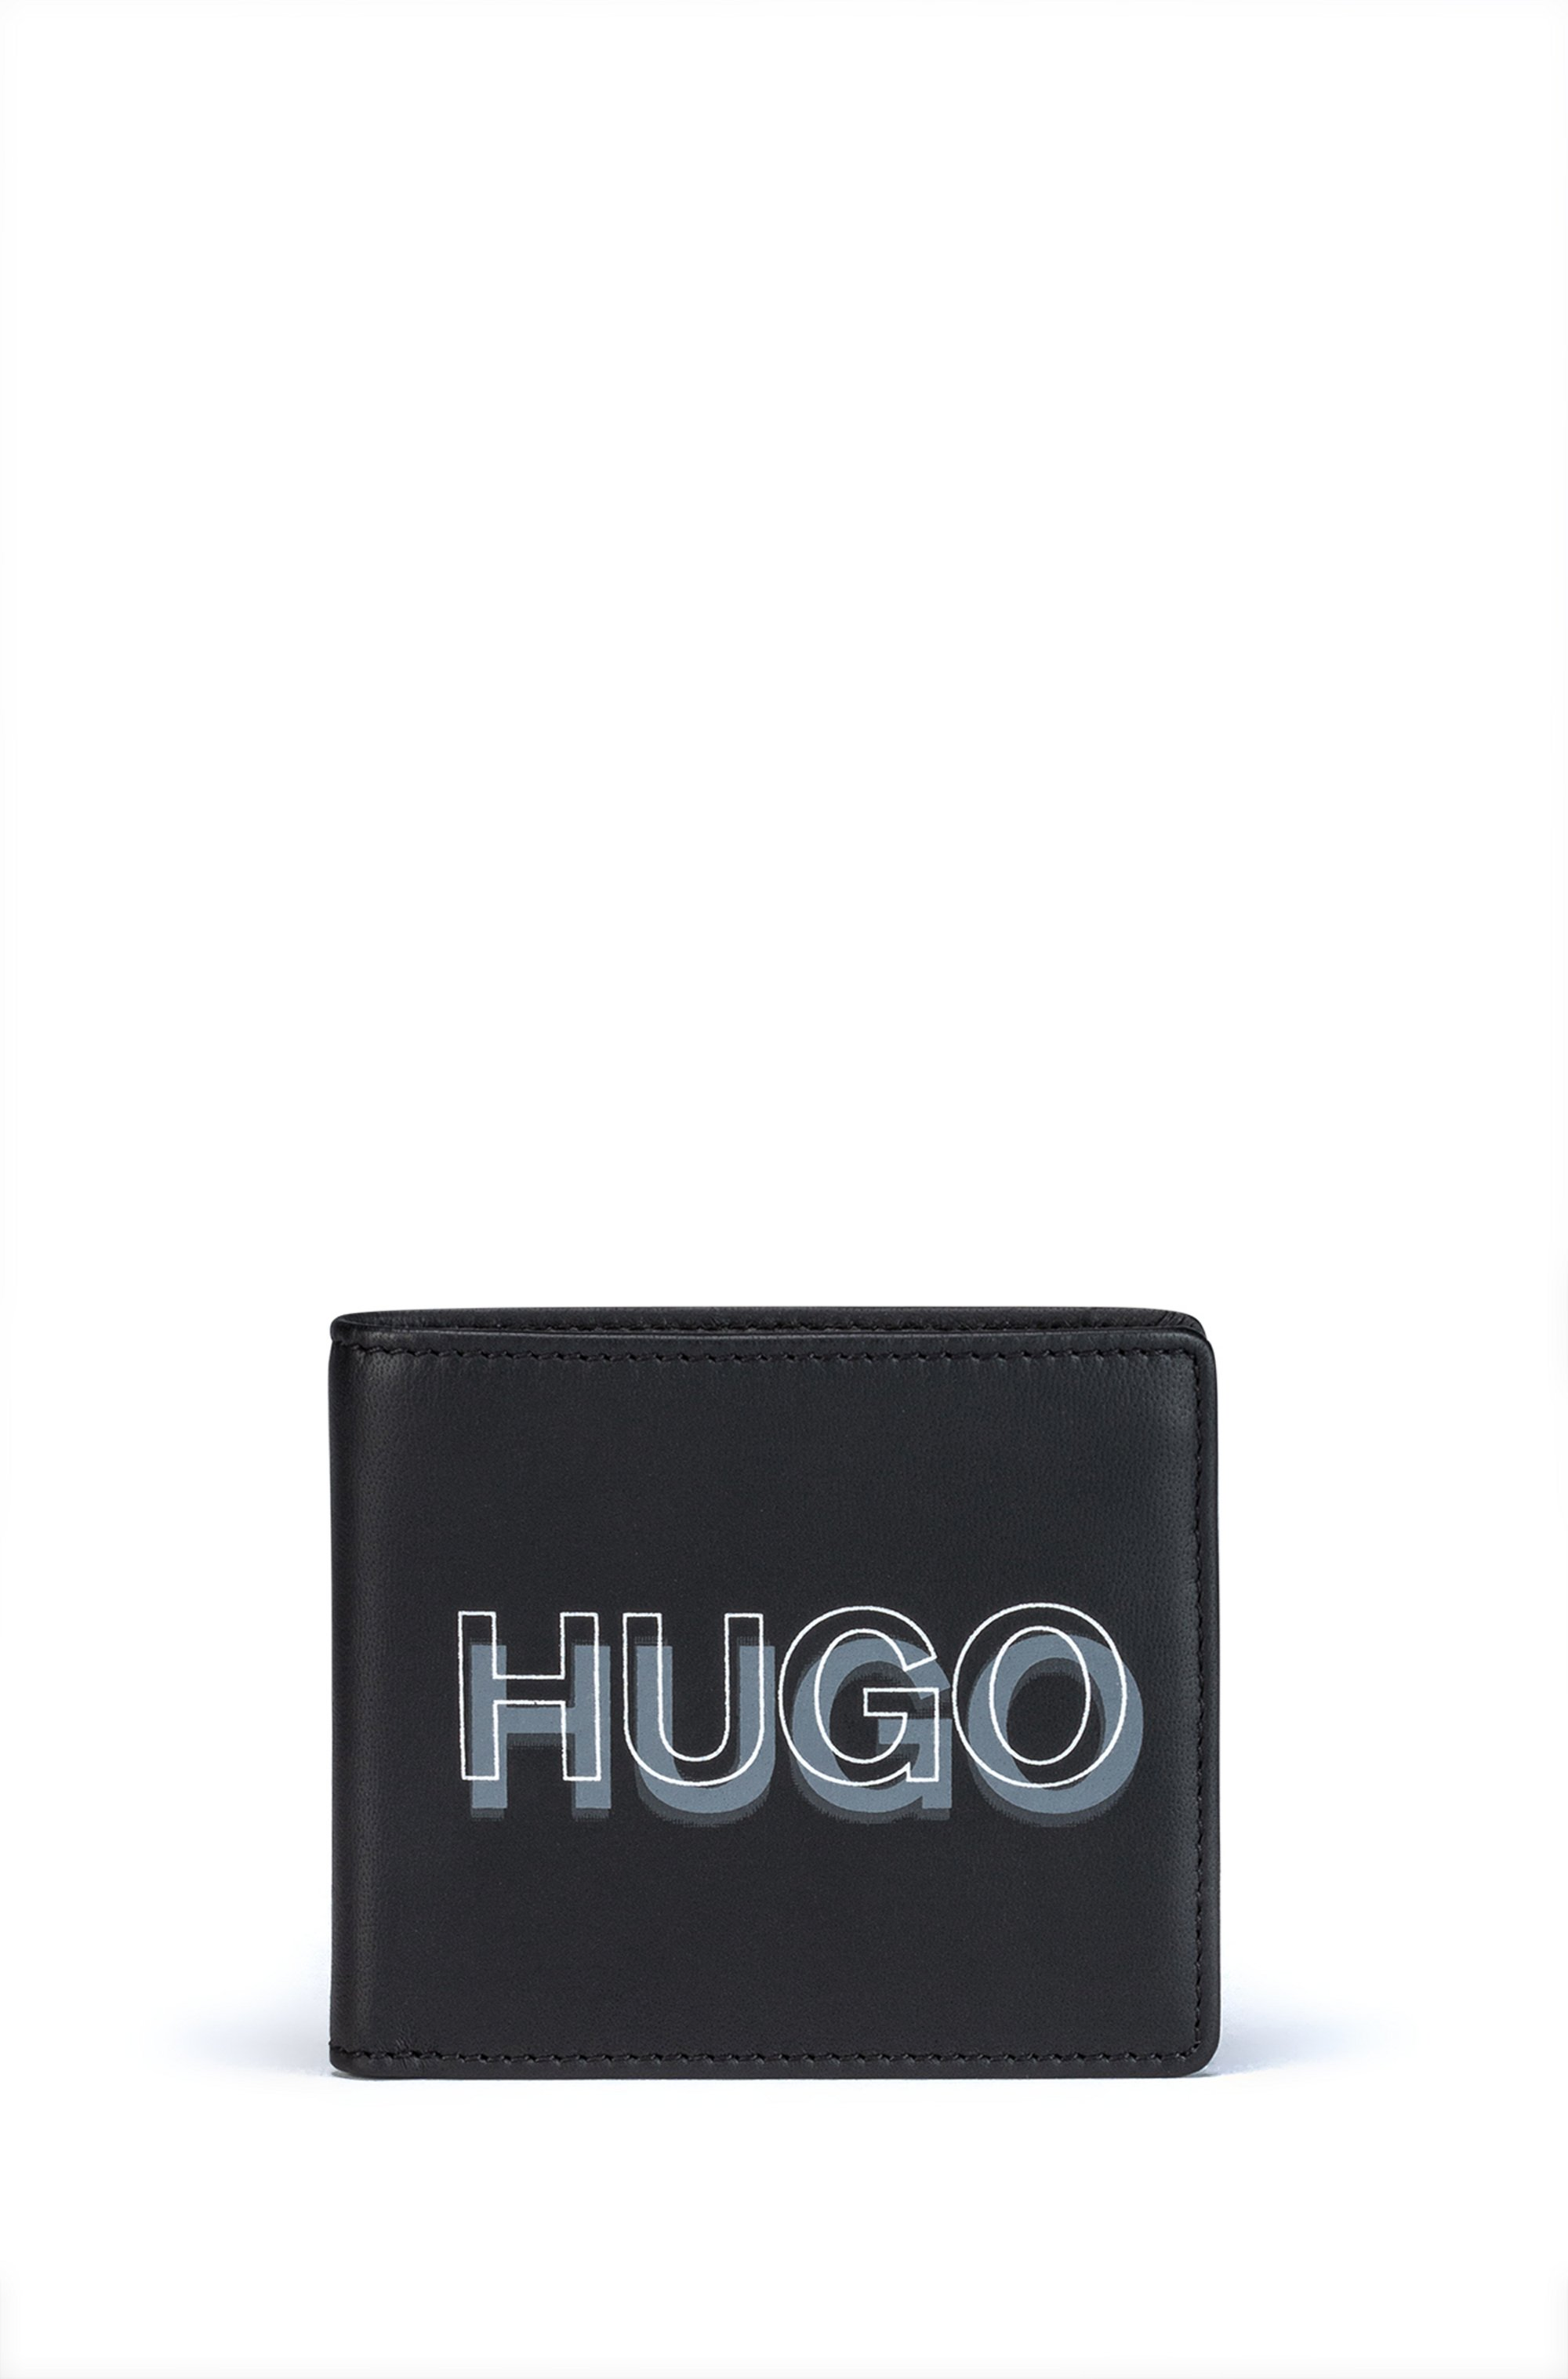 Gift-boxed logo wallet and card holder in leather